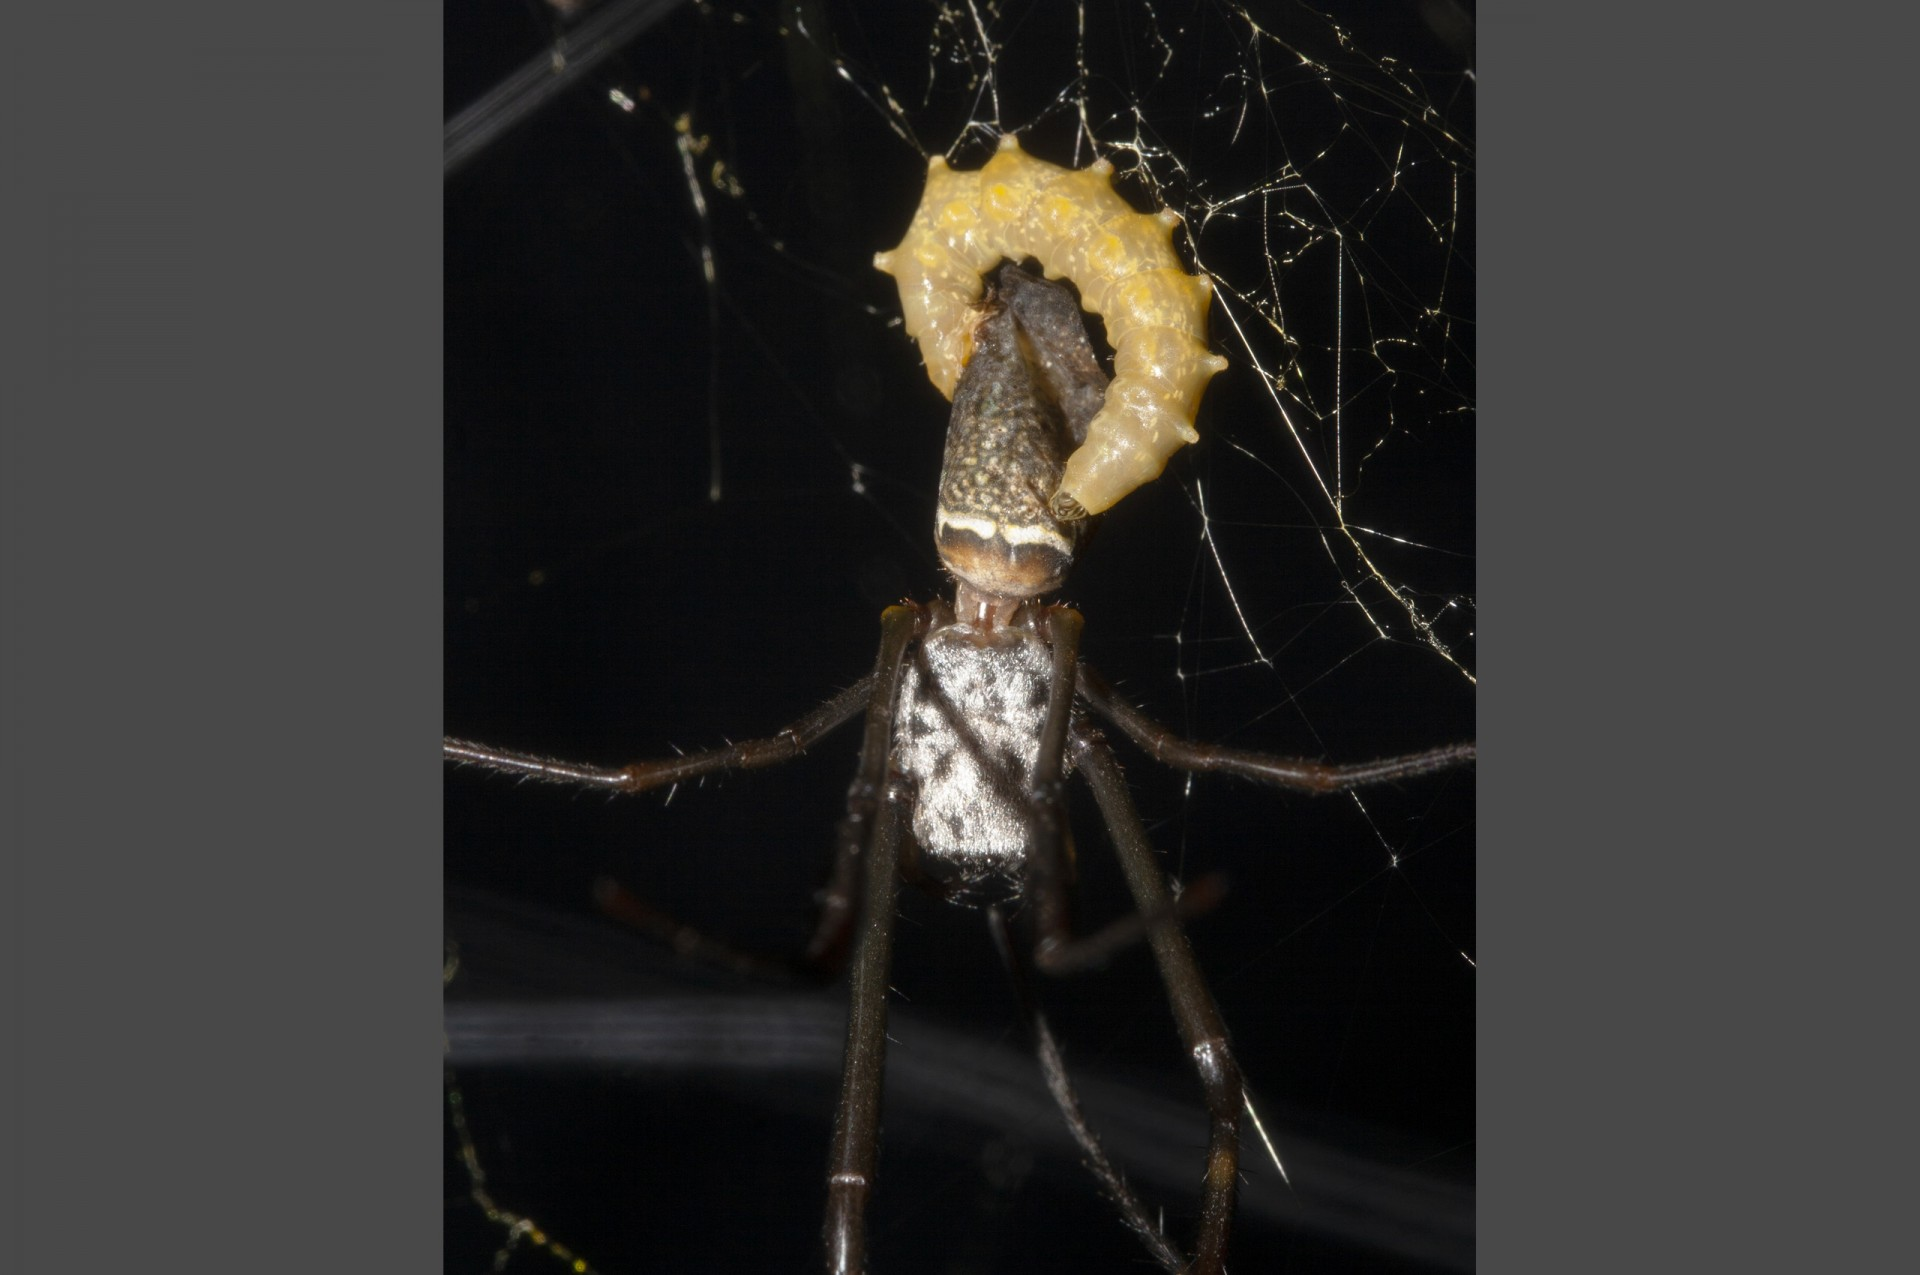 Now fully developed, the wasp larva proceeds to eat its host spider